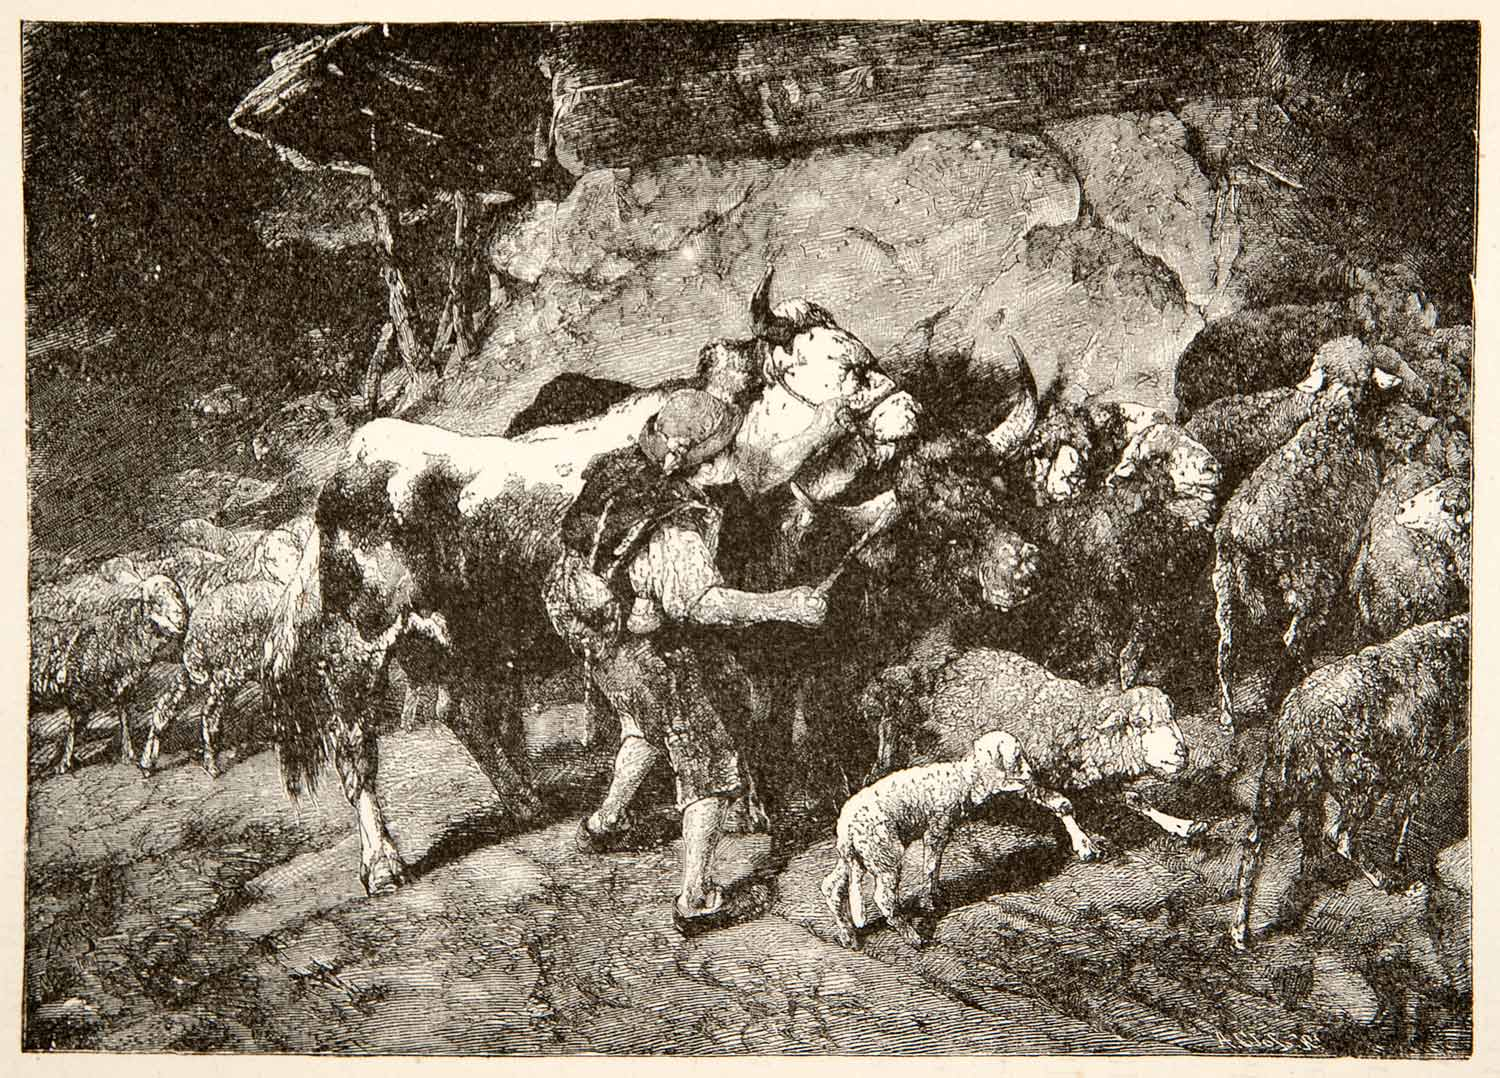 1881 Wood Engraving Cattle Sheep Shepherd Landscape Switzerland Wildlife XEI4